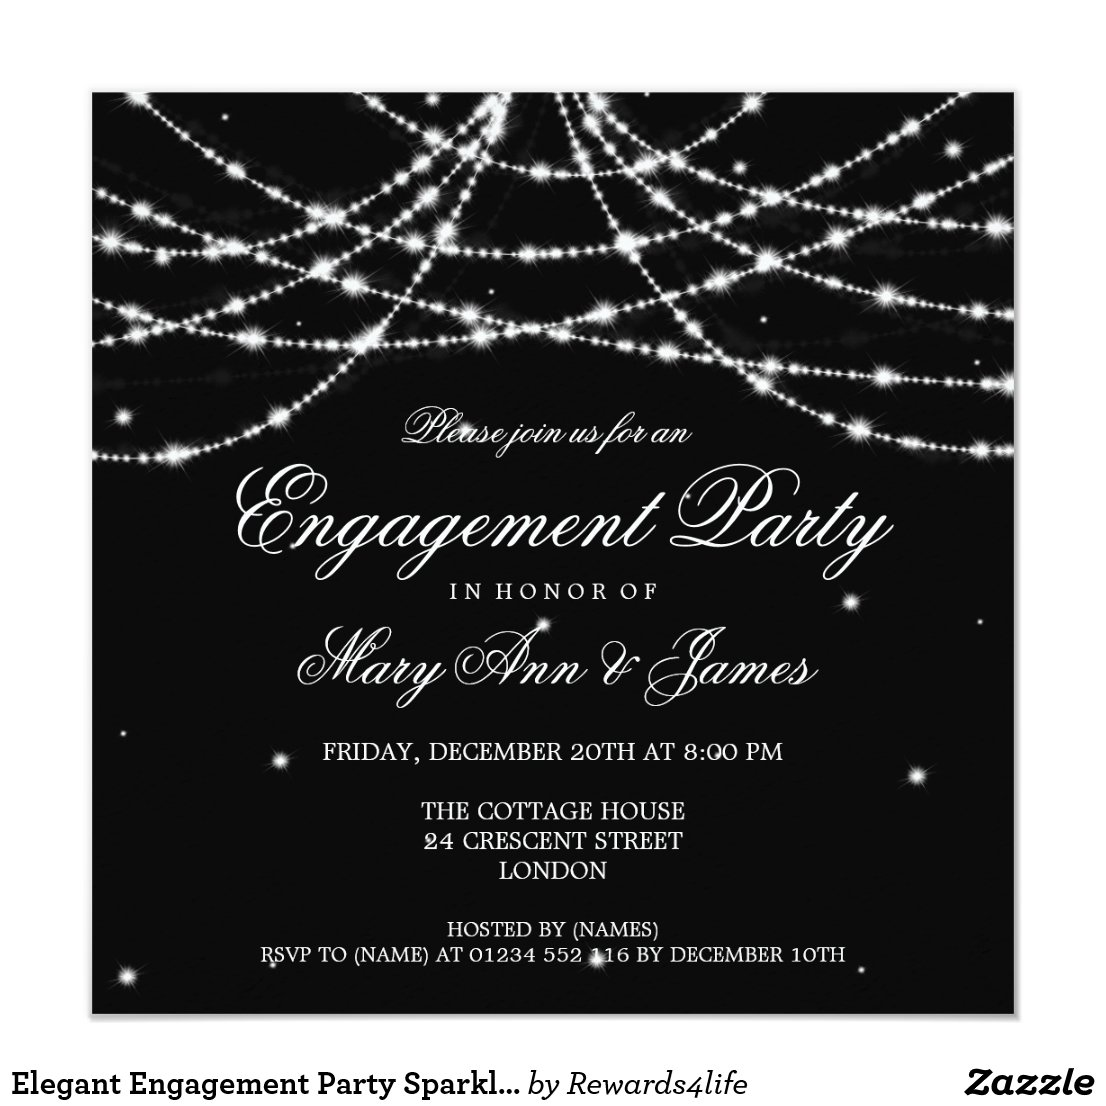 Elegant Engagement Party Sparkling String Black Invitation